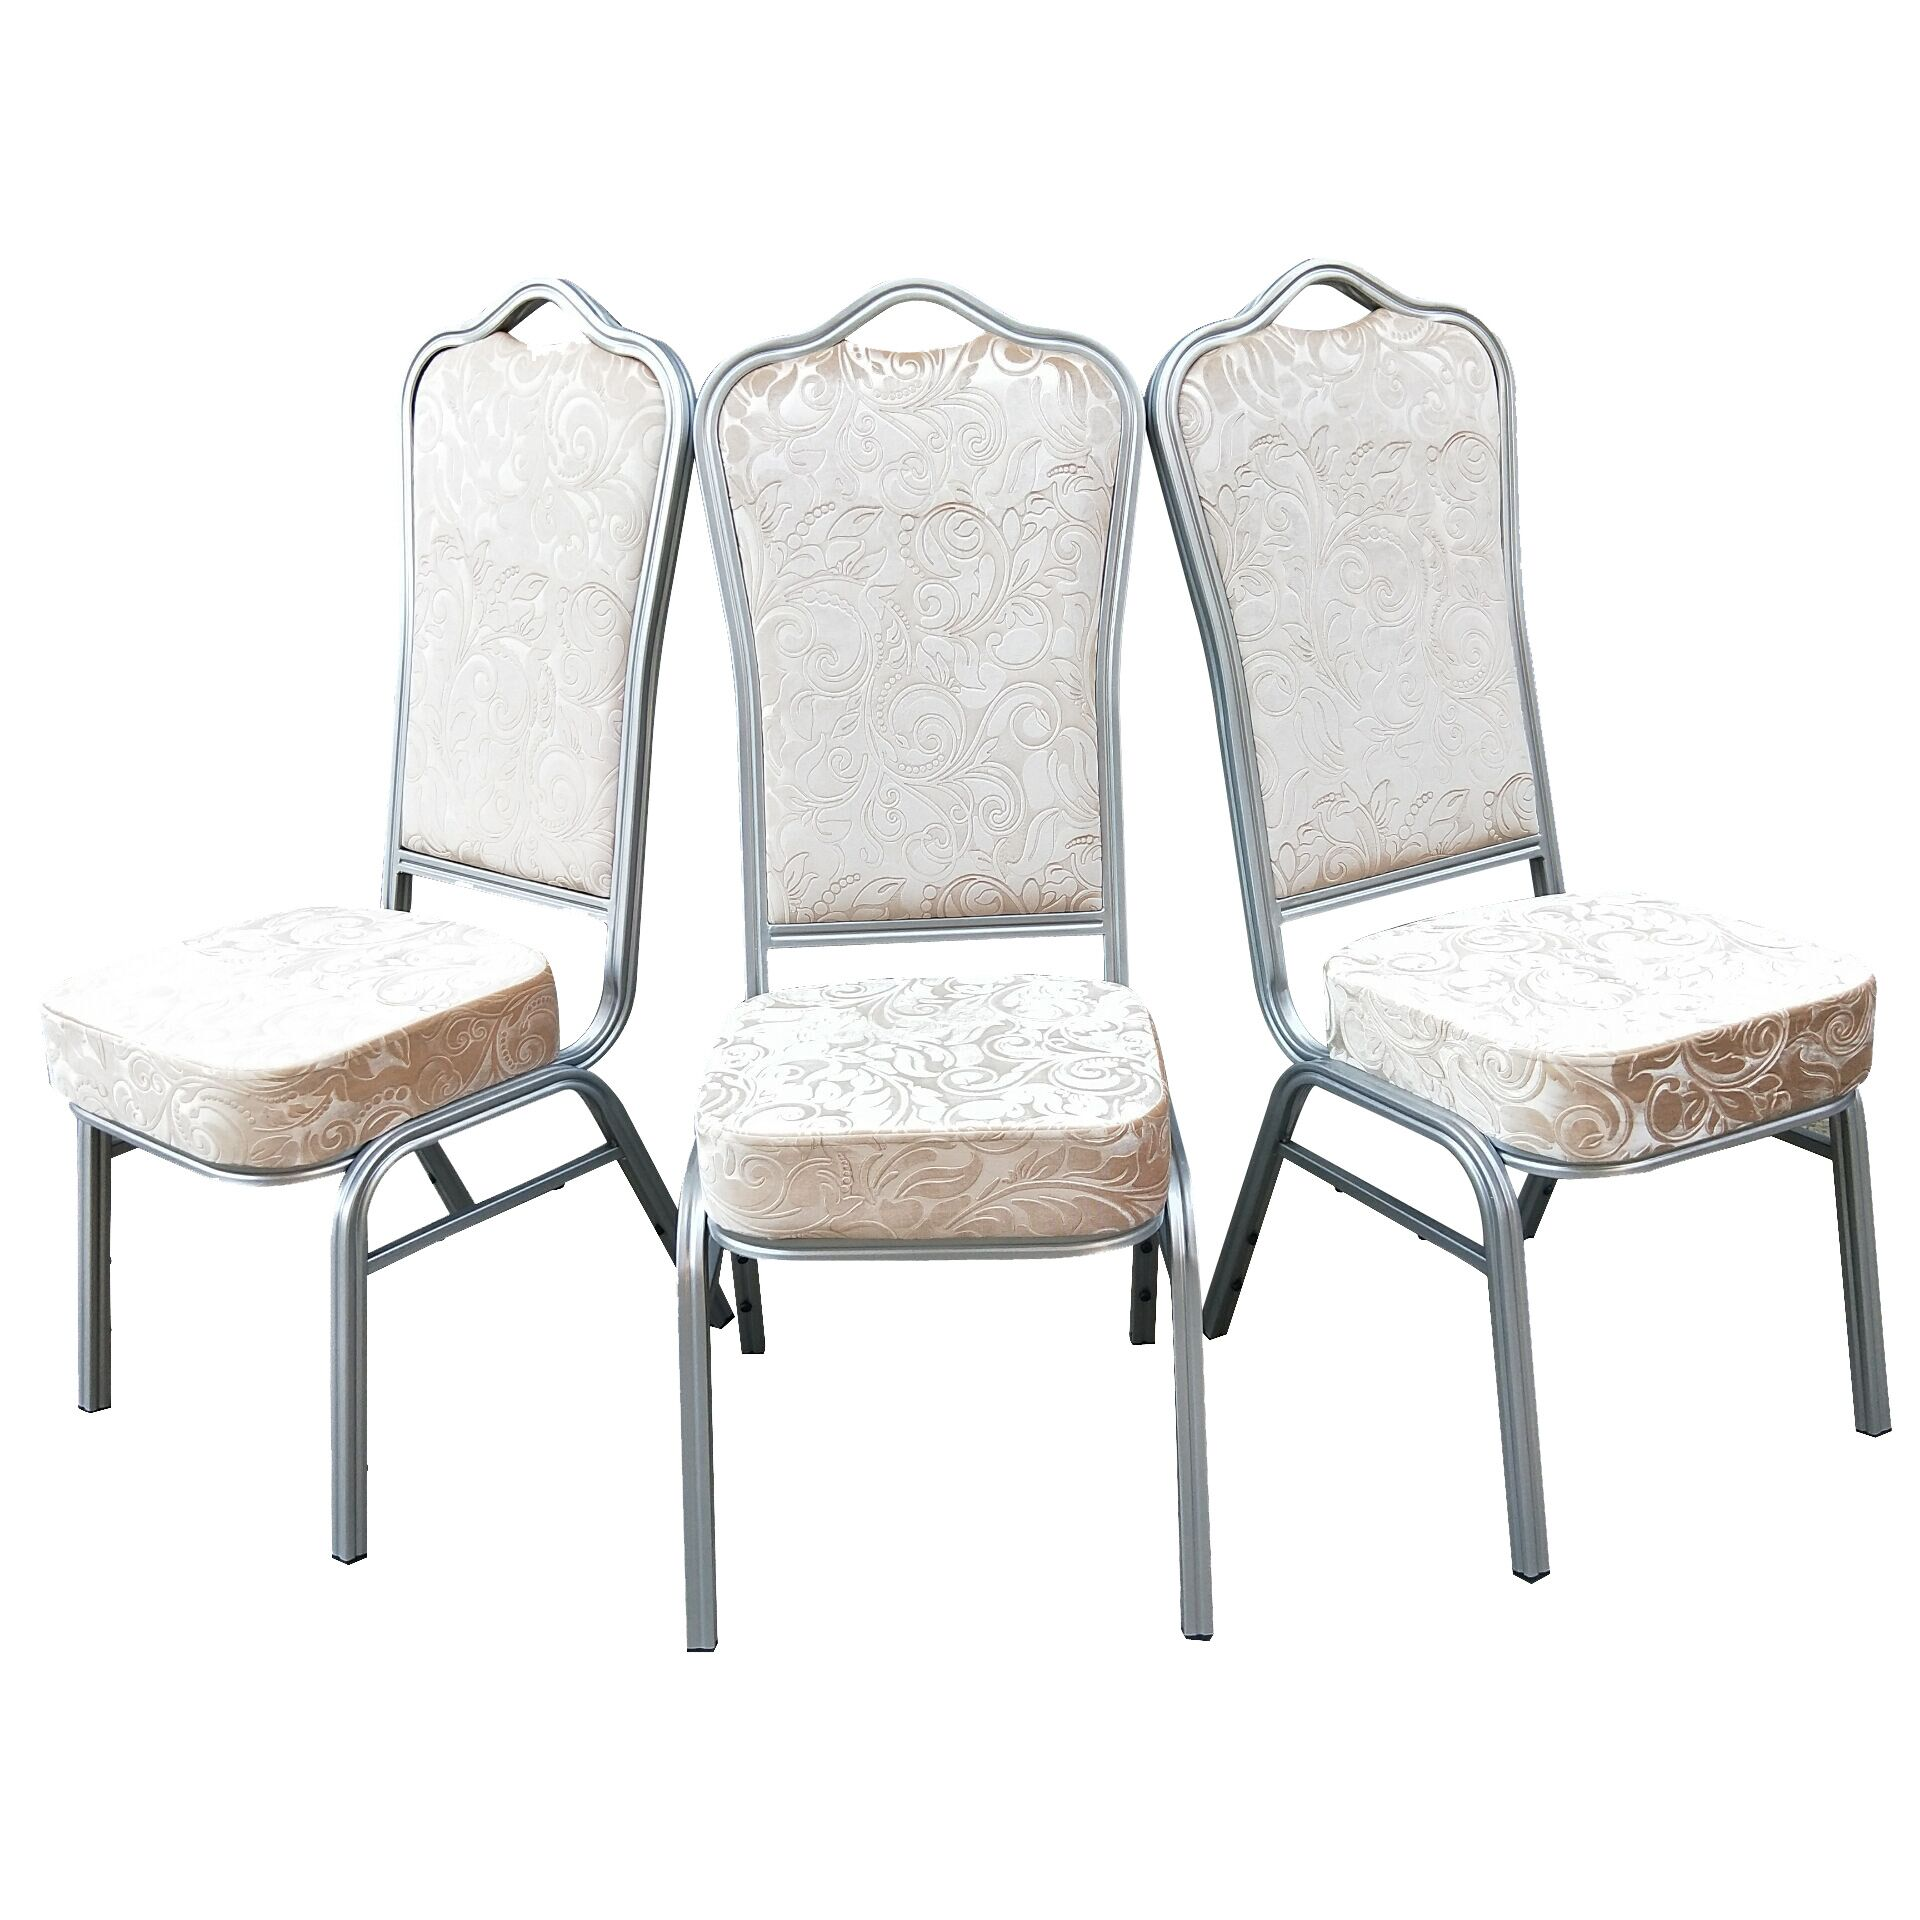 High back Banquet Furniture For Sale SF-G04 Featured Image